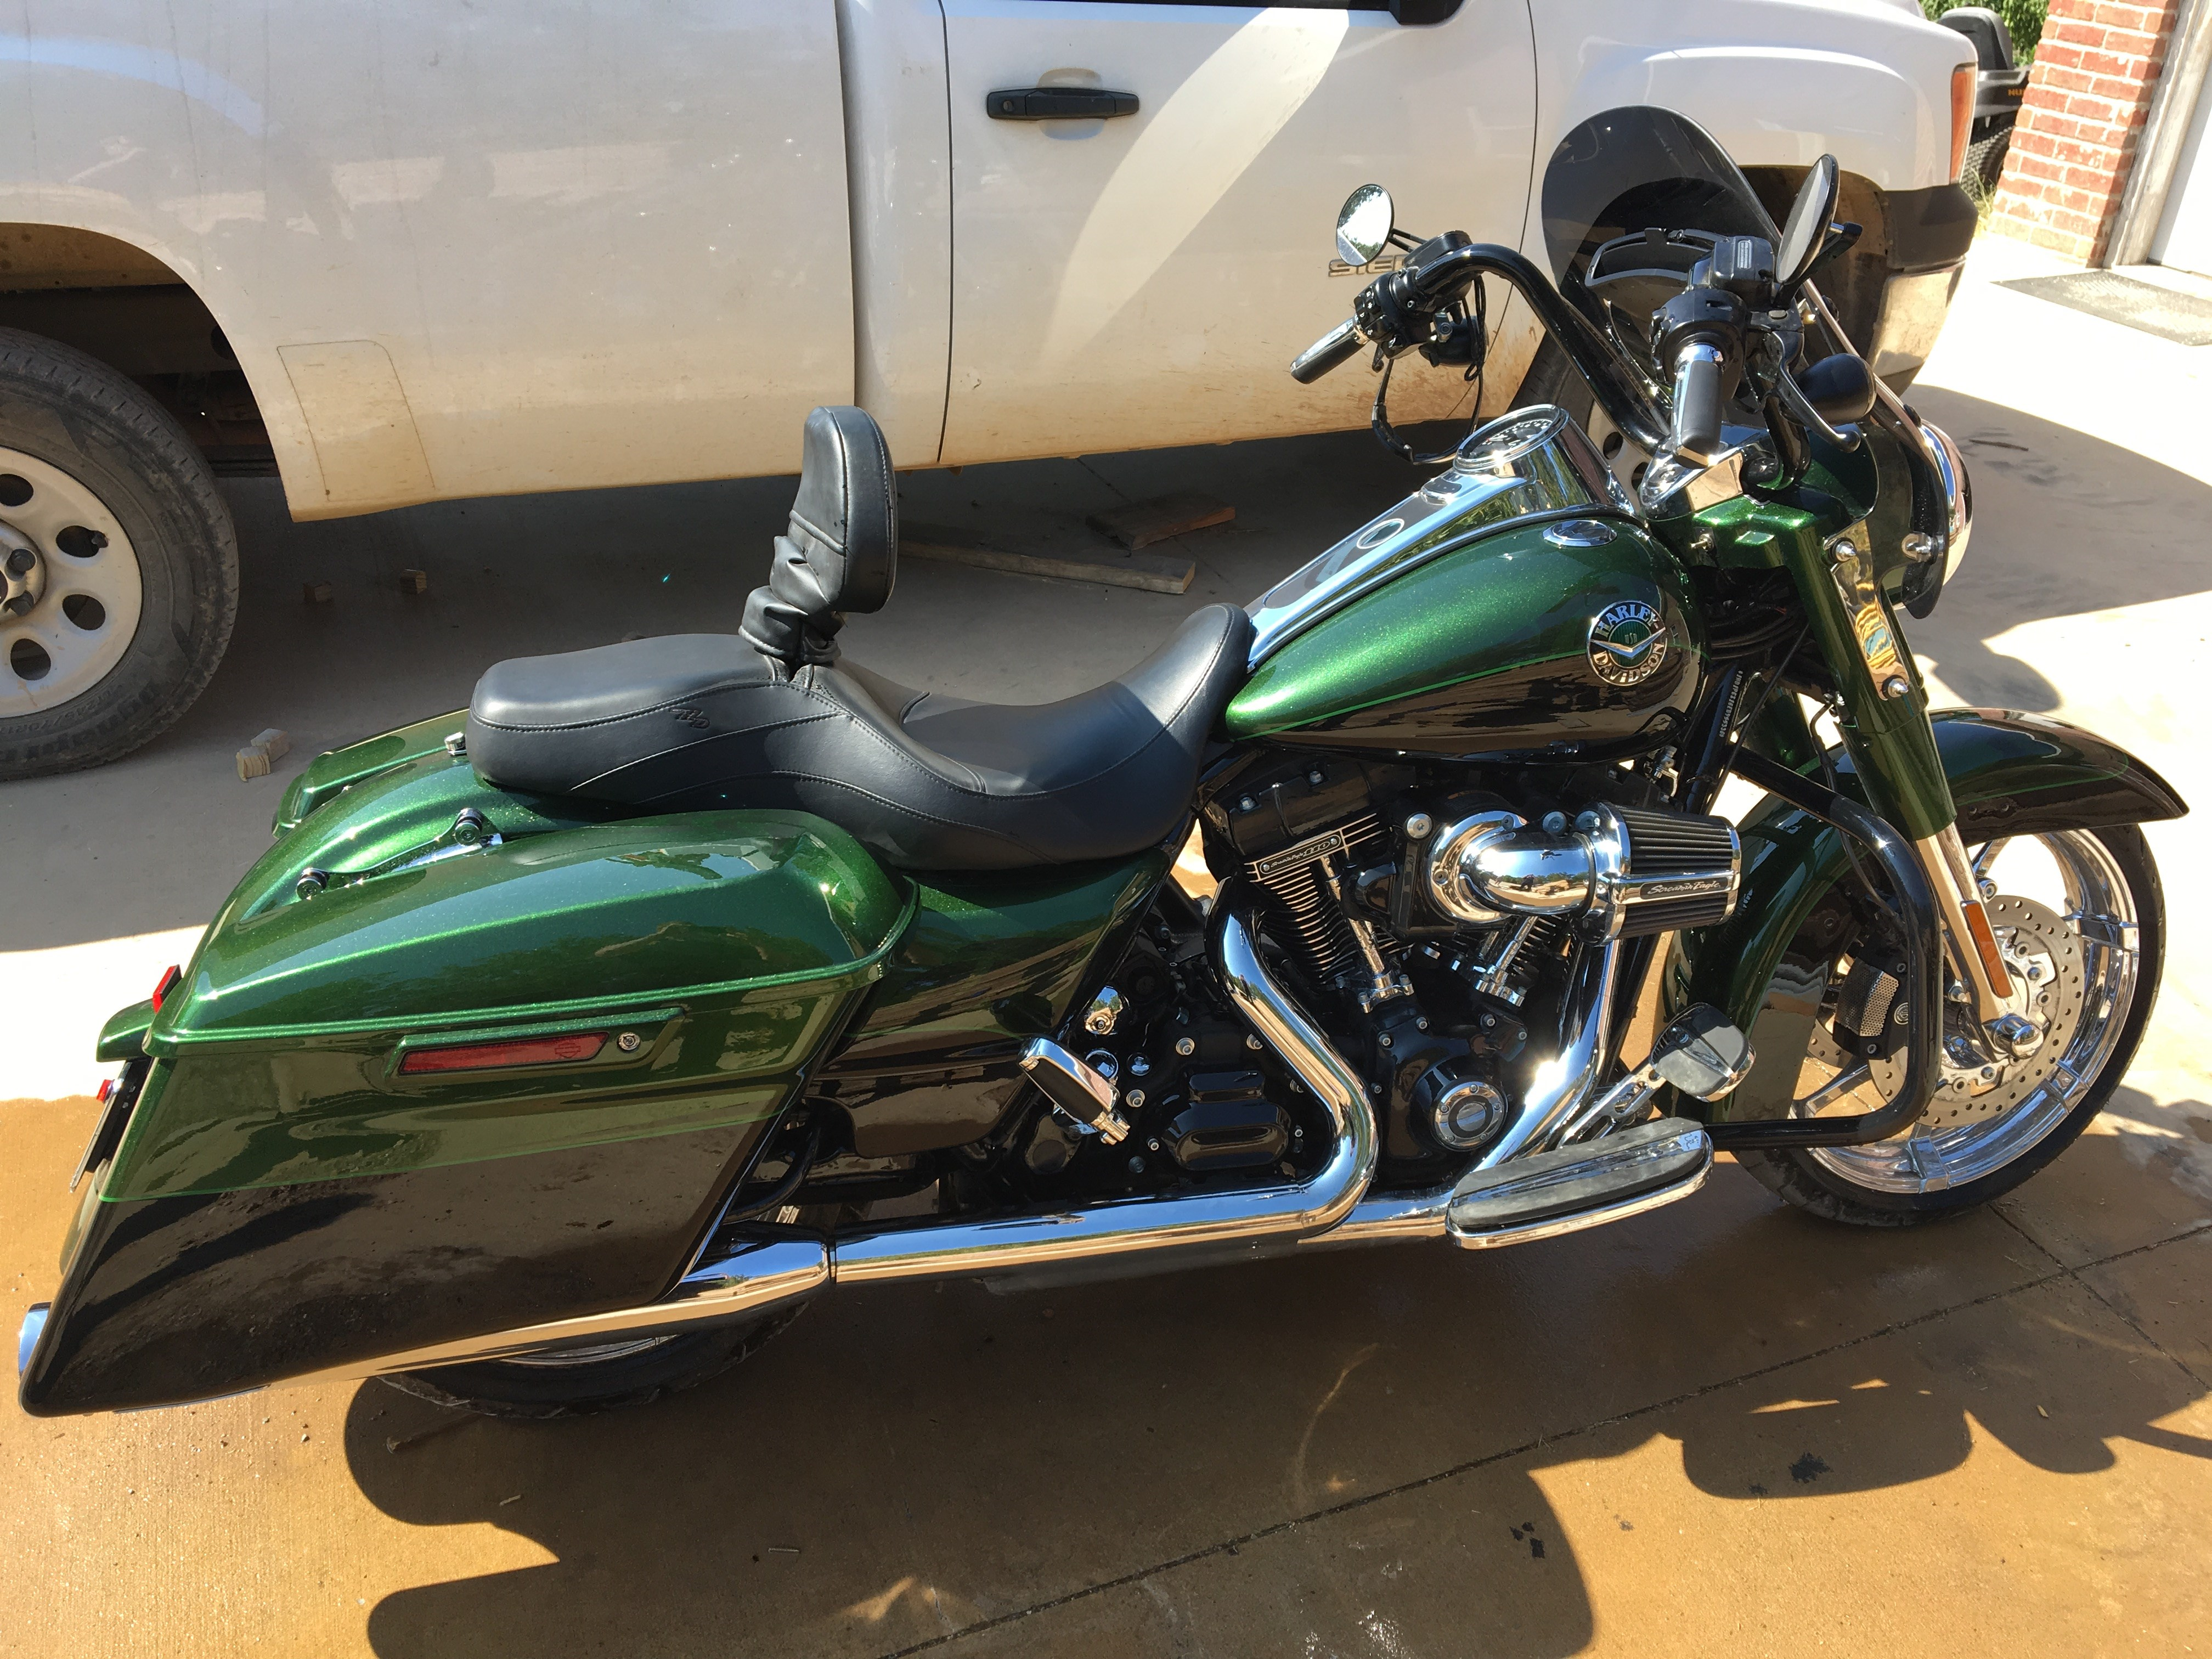 all new used harley davidson cvo road king for sale 54 bikes page 1 chopperexchange. Black Bedroom Furniture Sets. Home Design Ideas